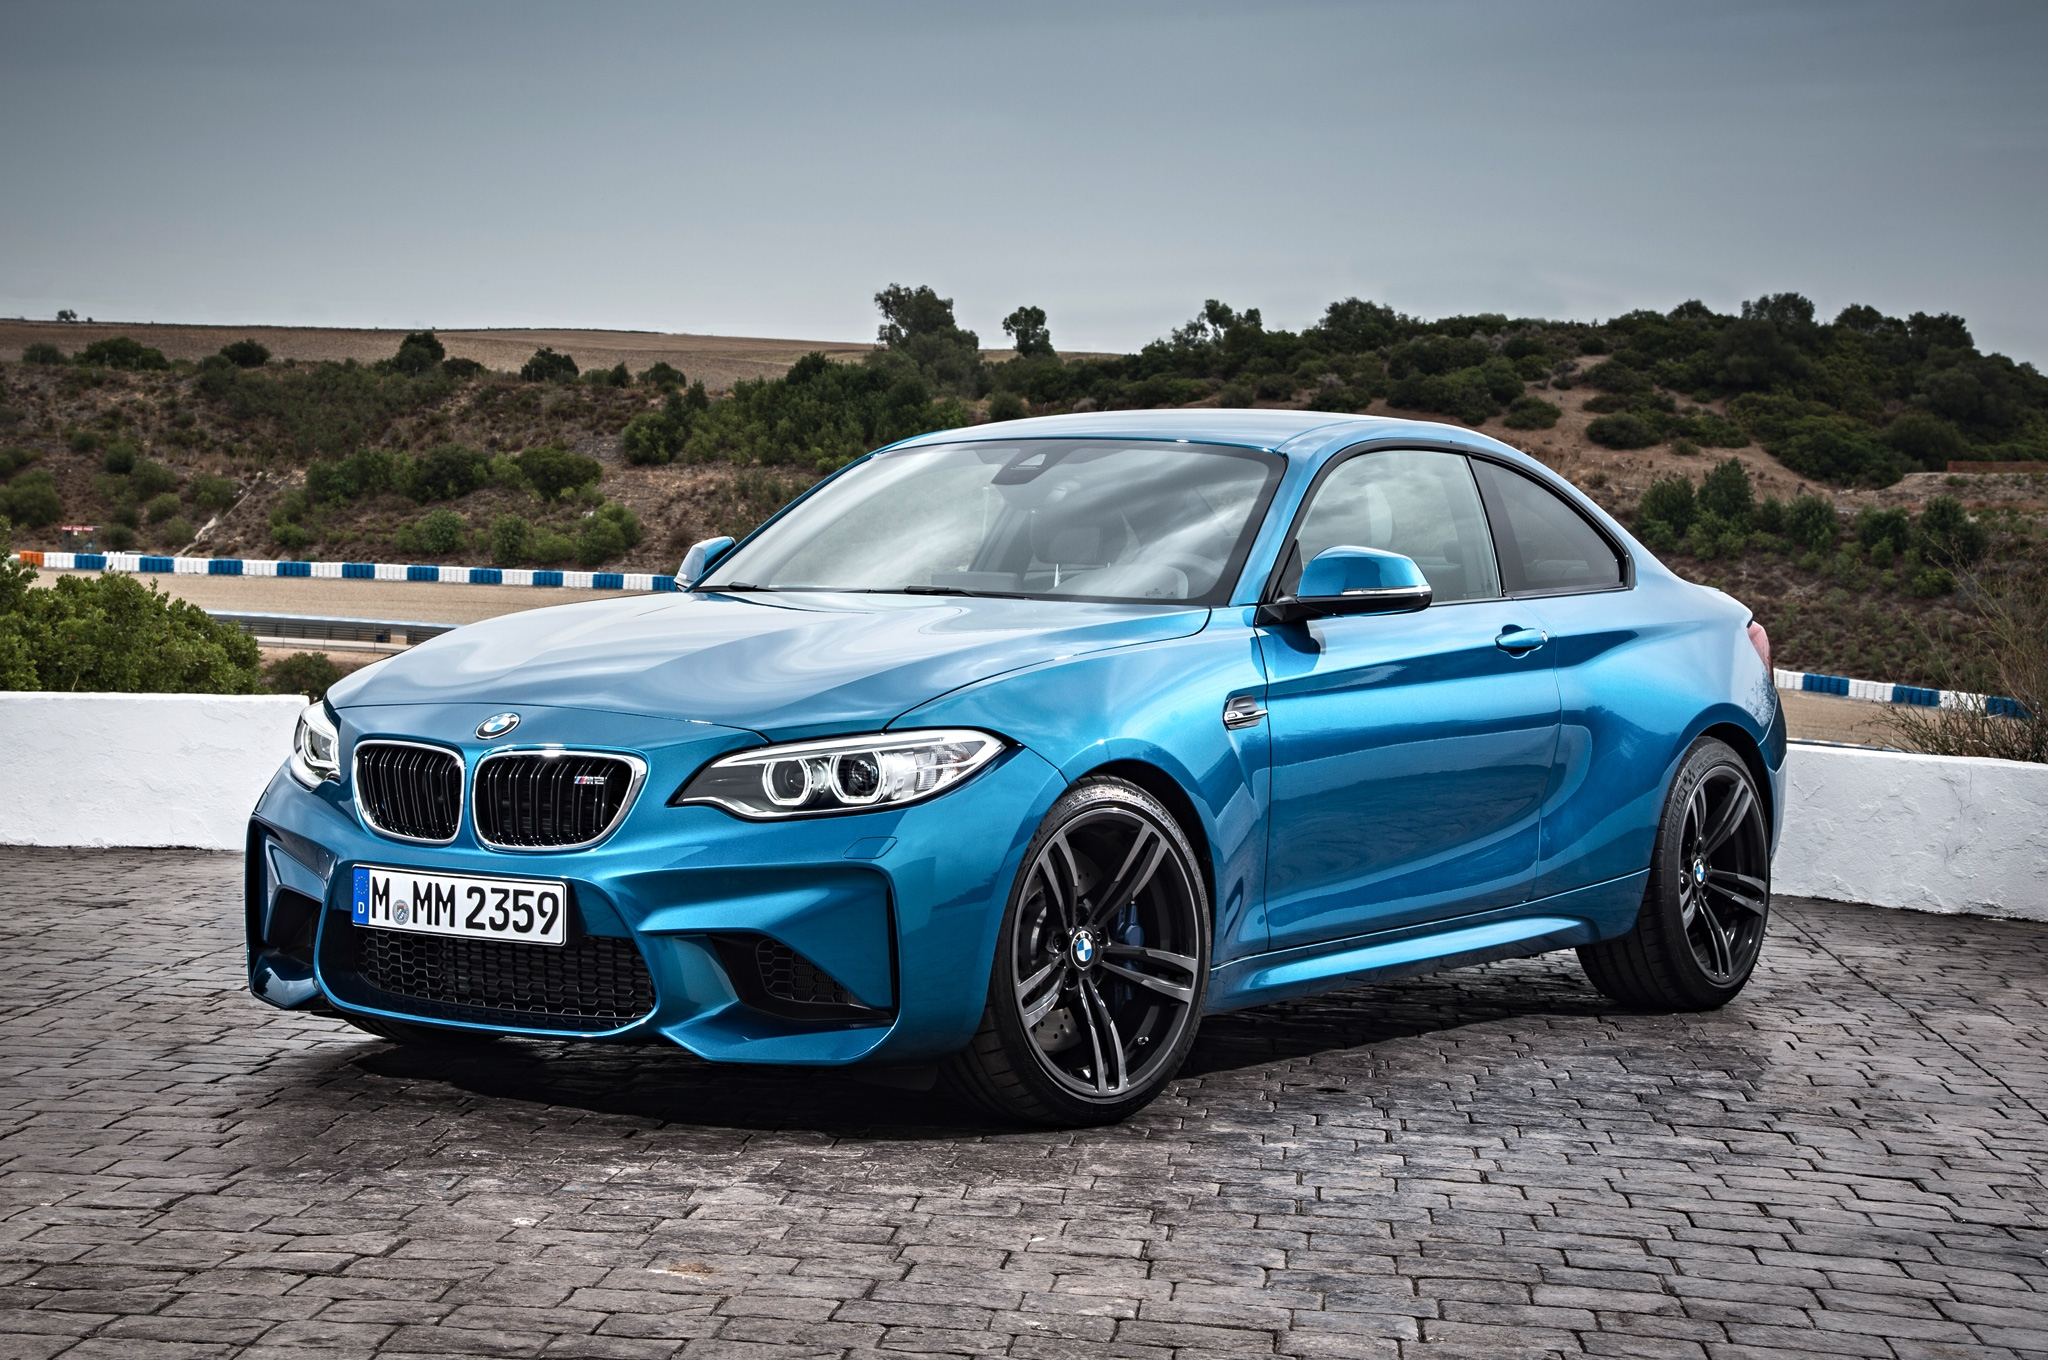 2016 Bmw M2 Canada24 S Club Photo 43225428 Fanpop In honor of one of my first videos ever on this channel, here is a rather bizarre topic that actually had some good stories. 2016 bmw m2 canada24 s club photo 43225428 fanpop